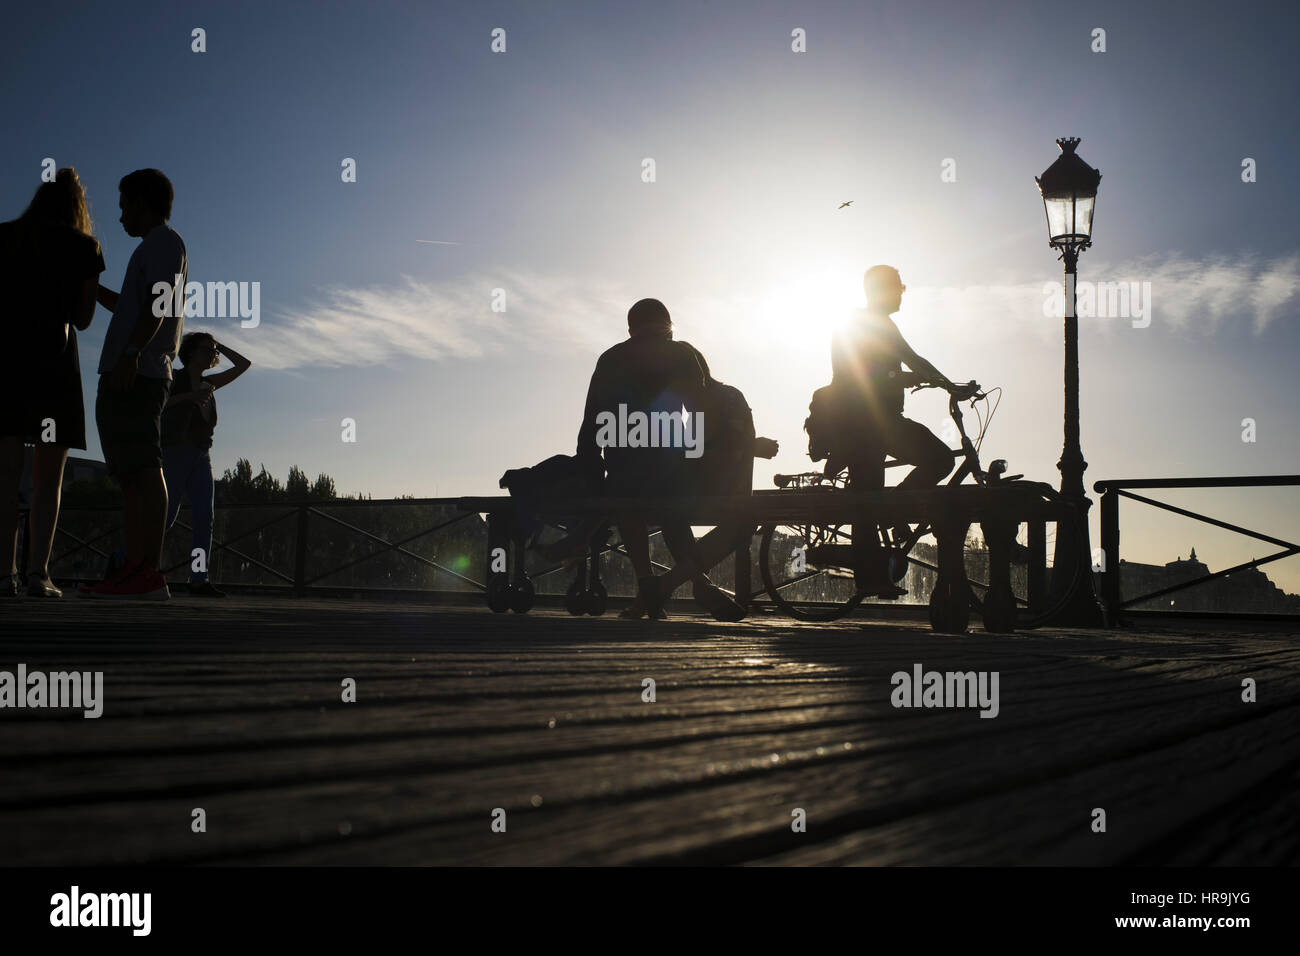 Silhouettes of people on a sunny afternoon at pont des arts in paris, france - Stock Image